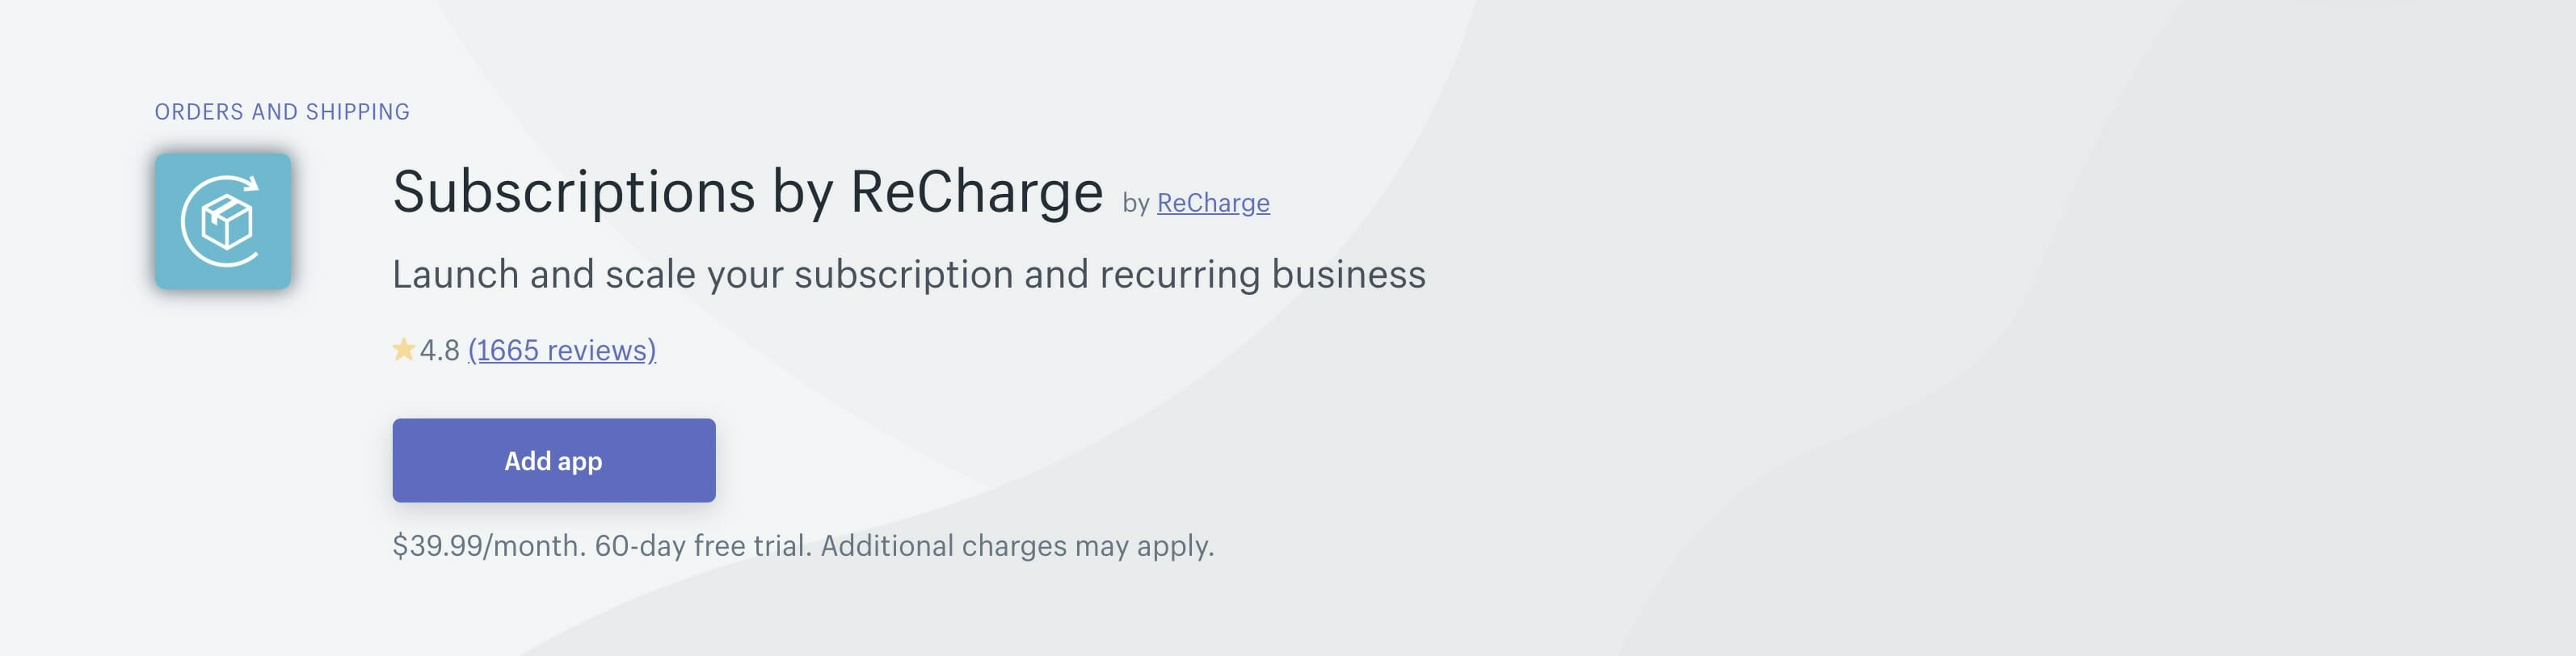 Subscriptions_by_ReCharge